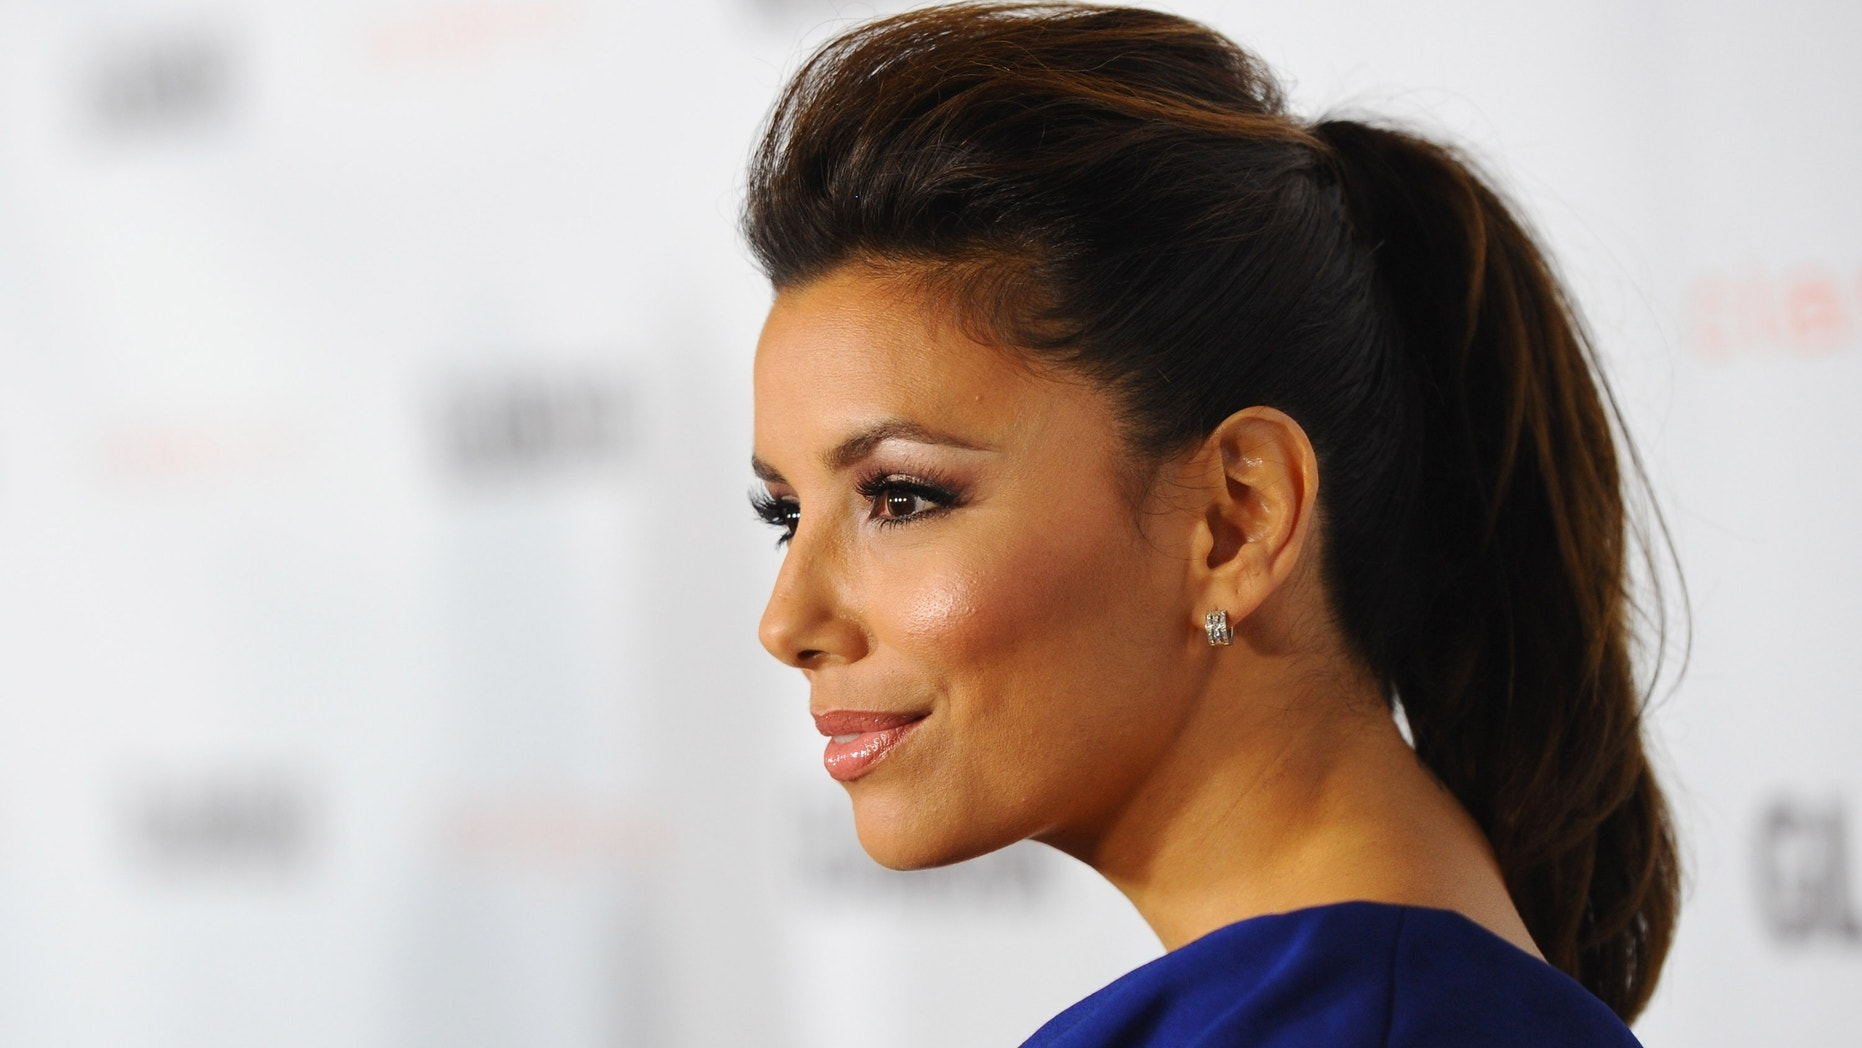 Oct. 24,2011: Glamour Reel Moments Director Eva Longoria arrives at the 2011 Glamour Reel Moments premiere presented by Clarisonic held at the Directors Guild Of America in West Hollywood, Calif.